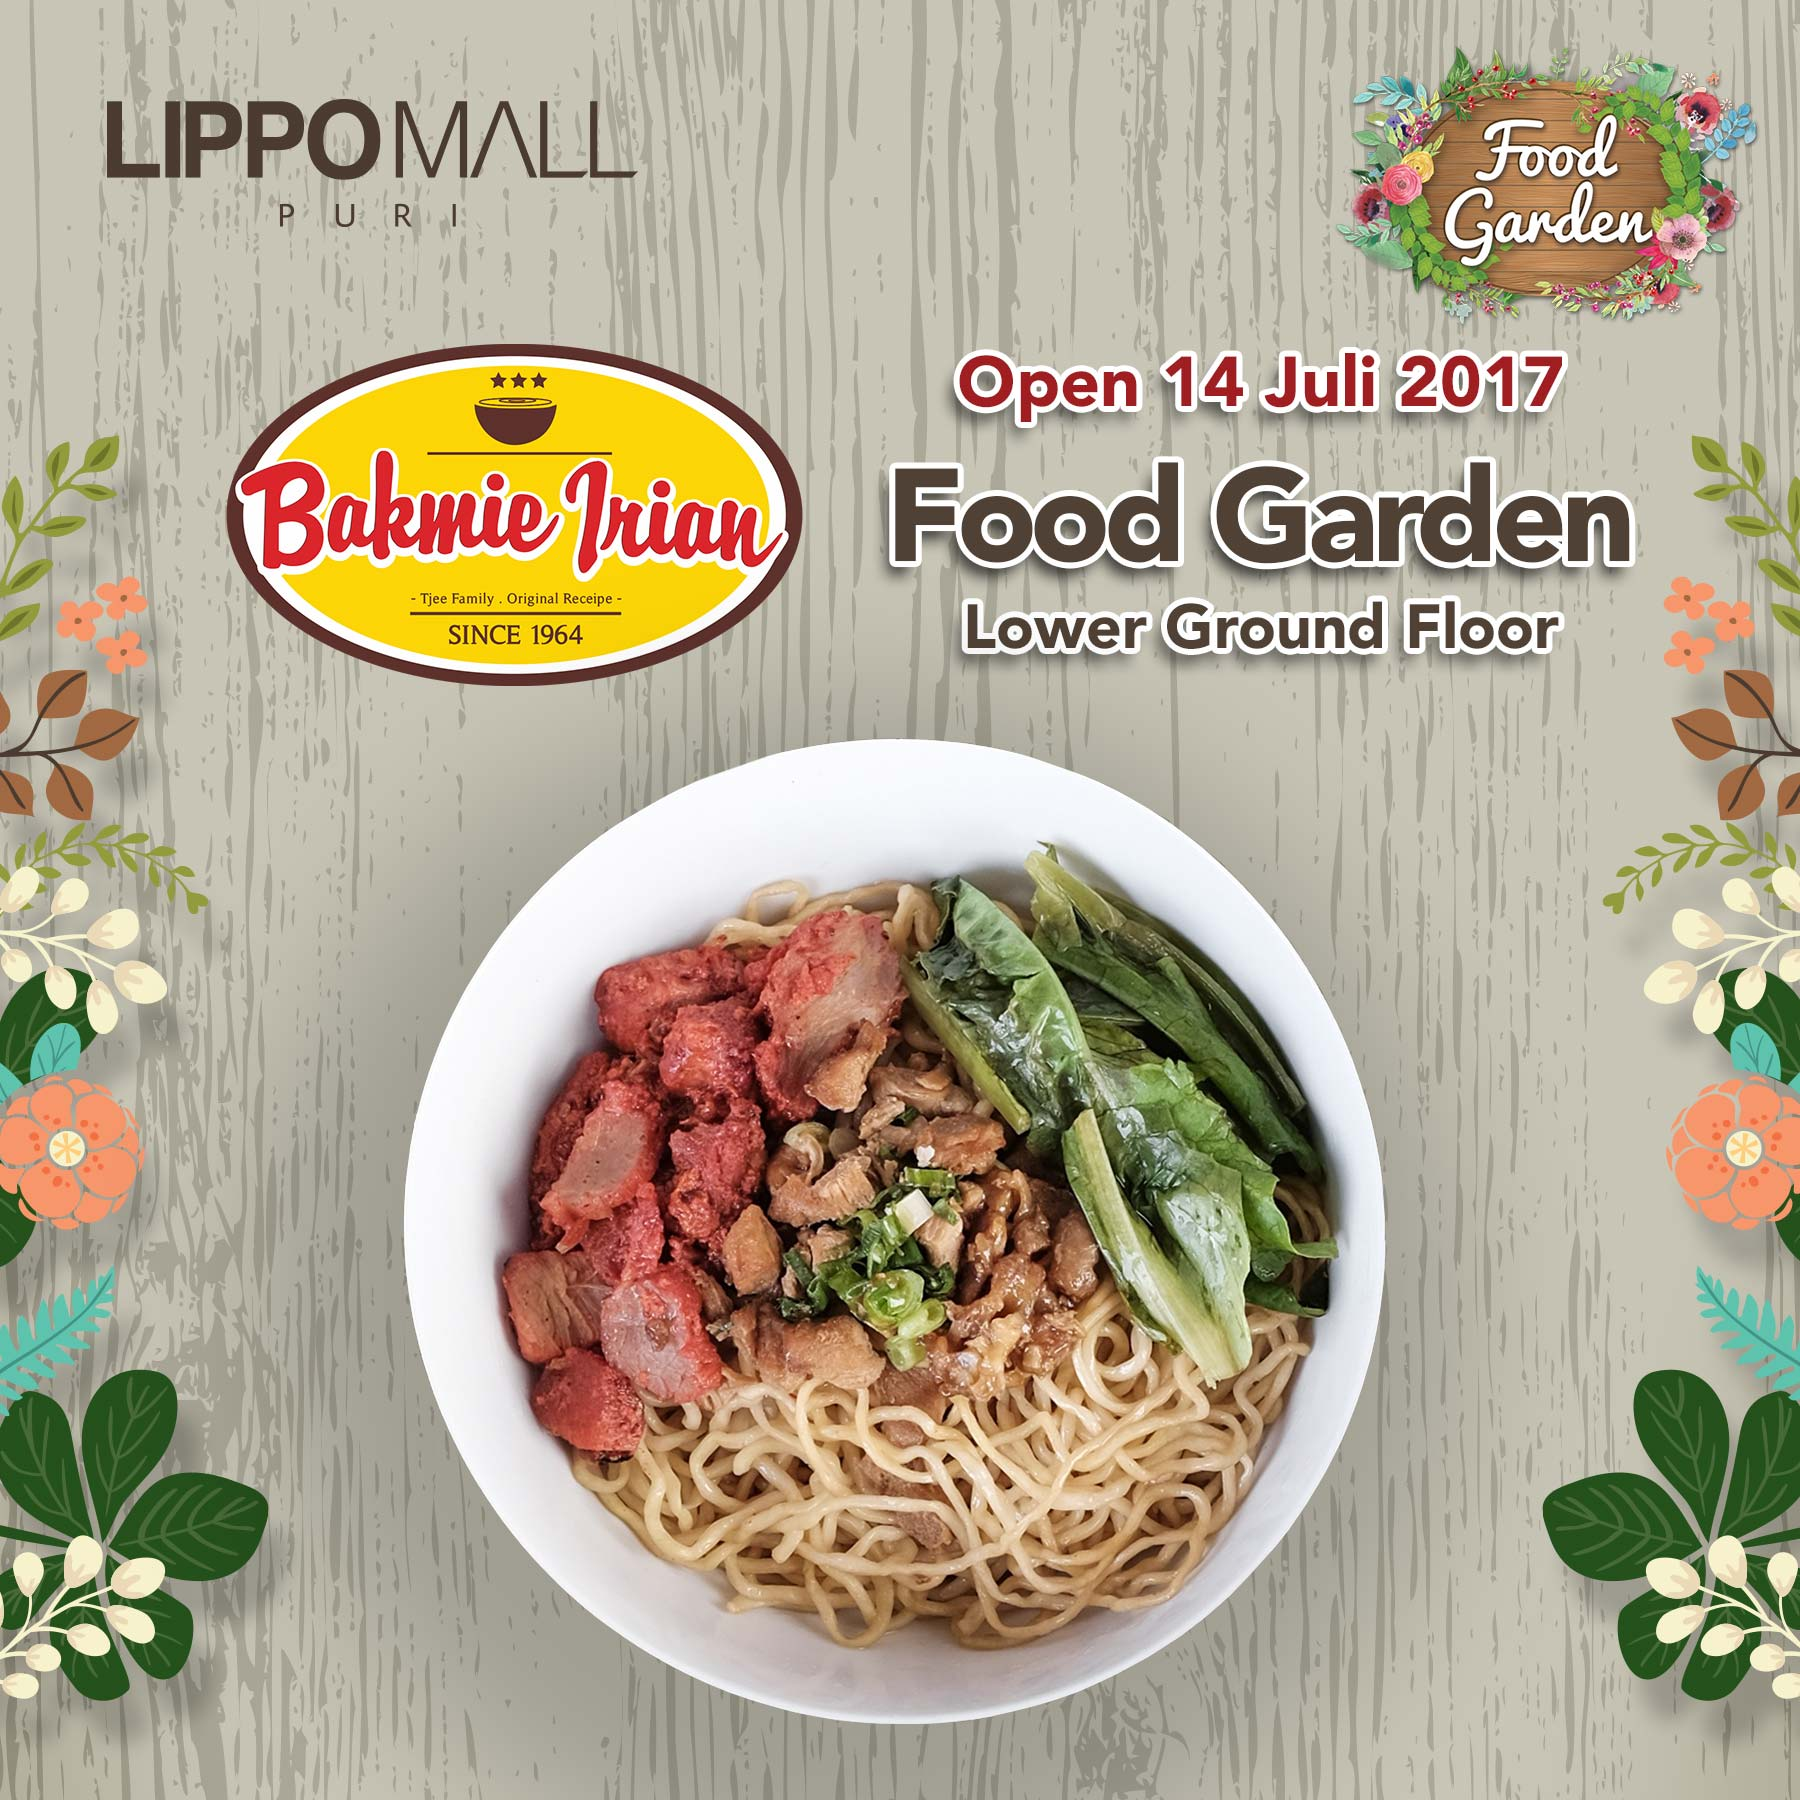 Food garden pictures - New Food Garden Event In Lippo Mall Puri St Moritz